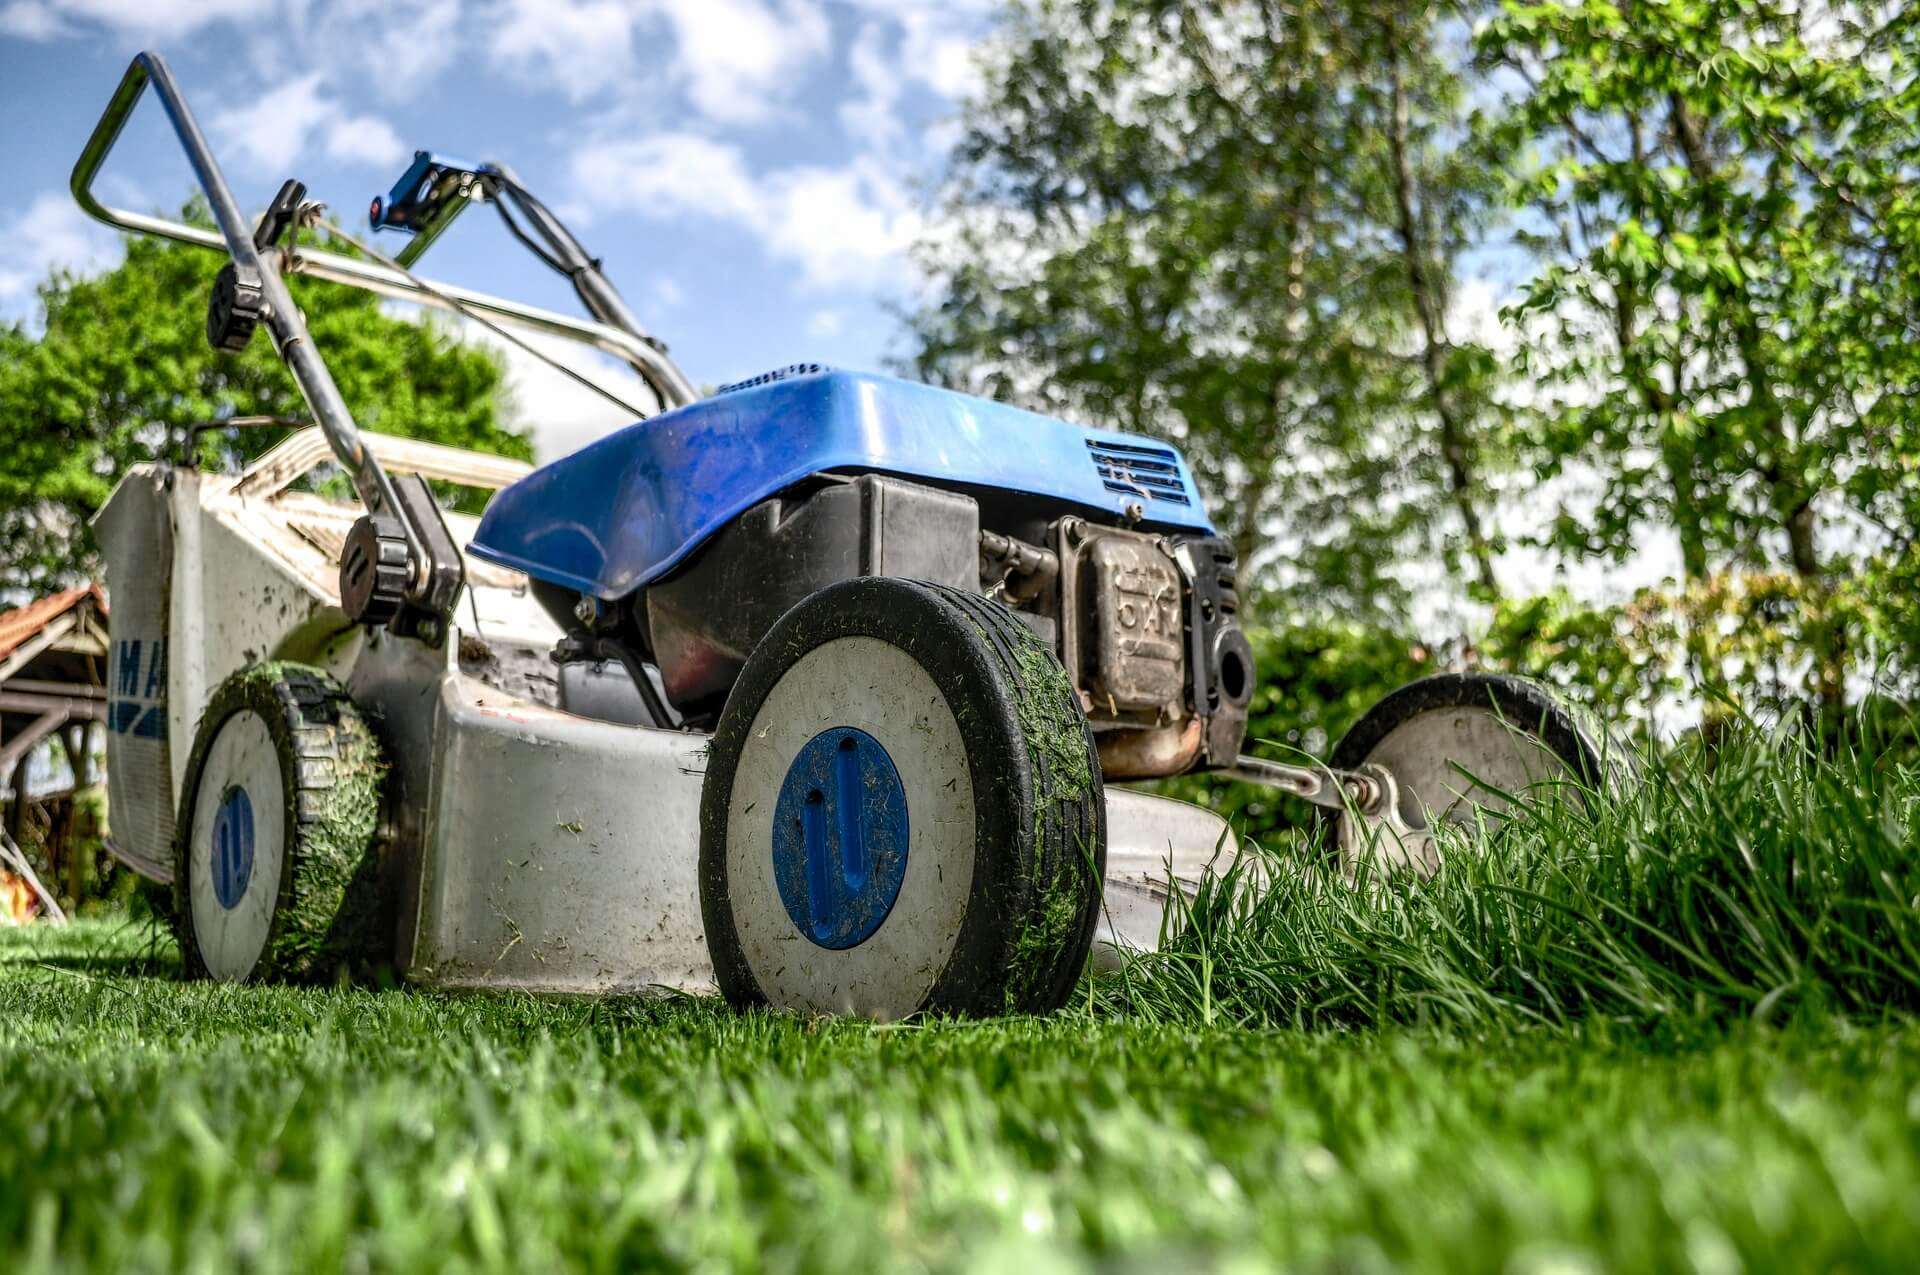 Lawnmower From Arnies Lawn Care